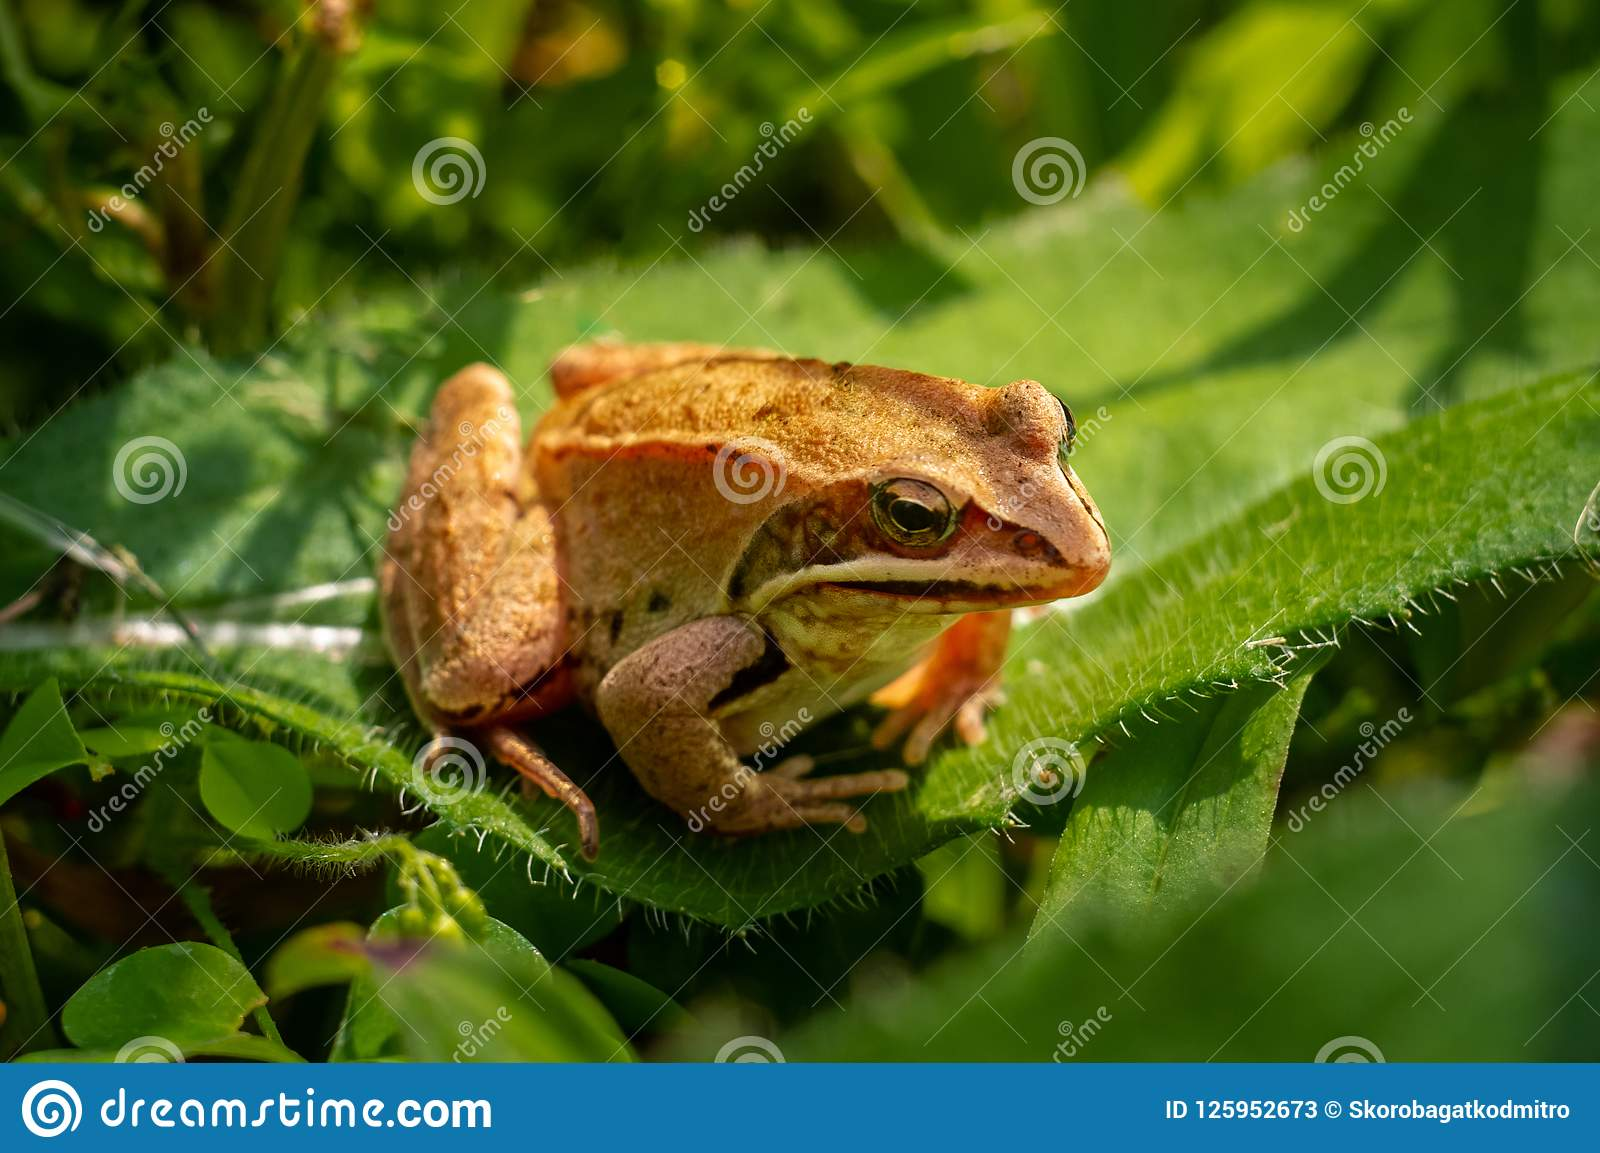 A Small Frog On Green Leaves In The Garden Stock Image